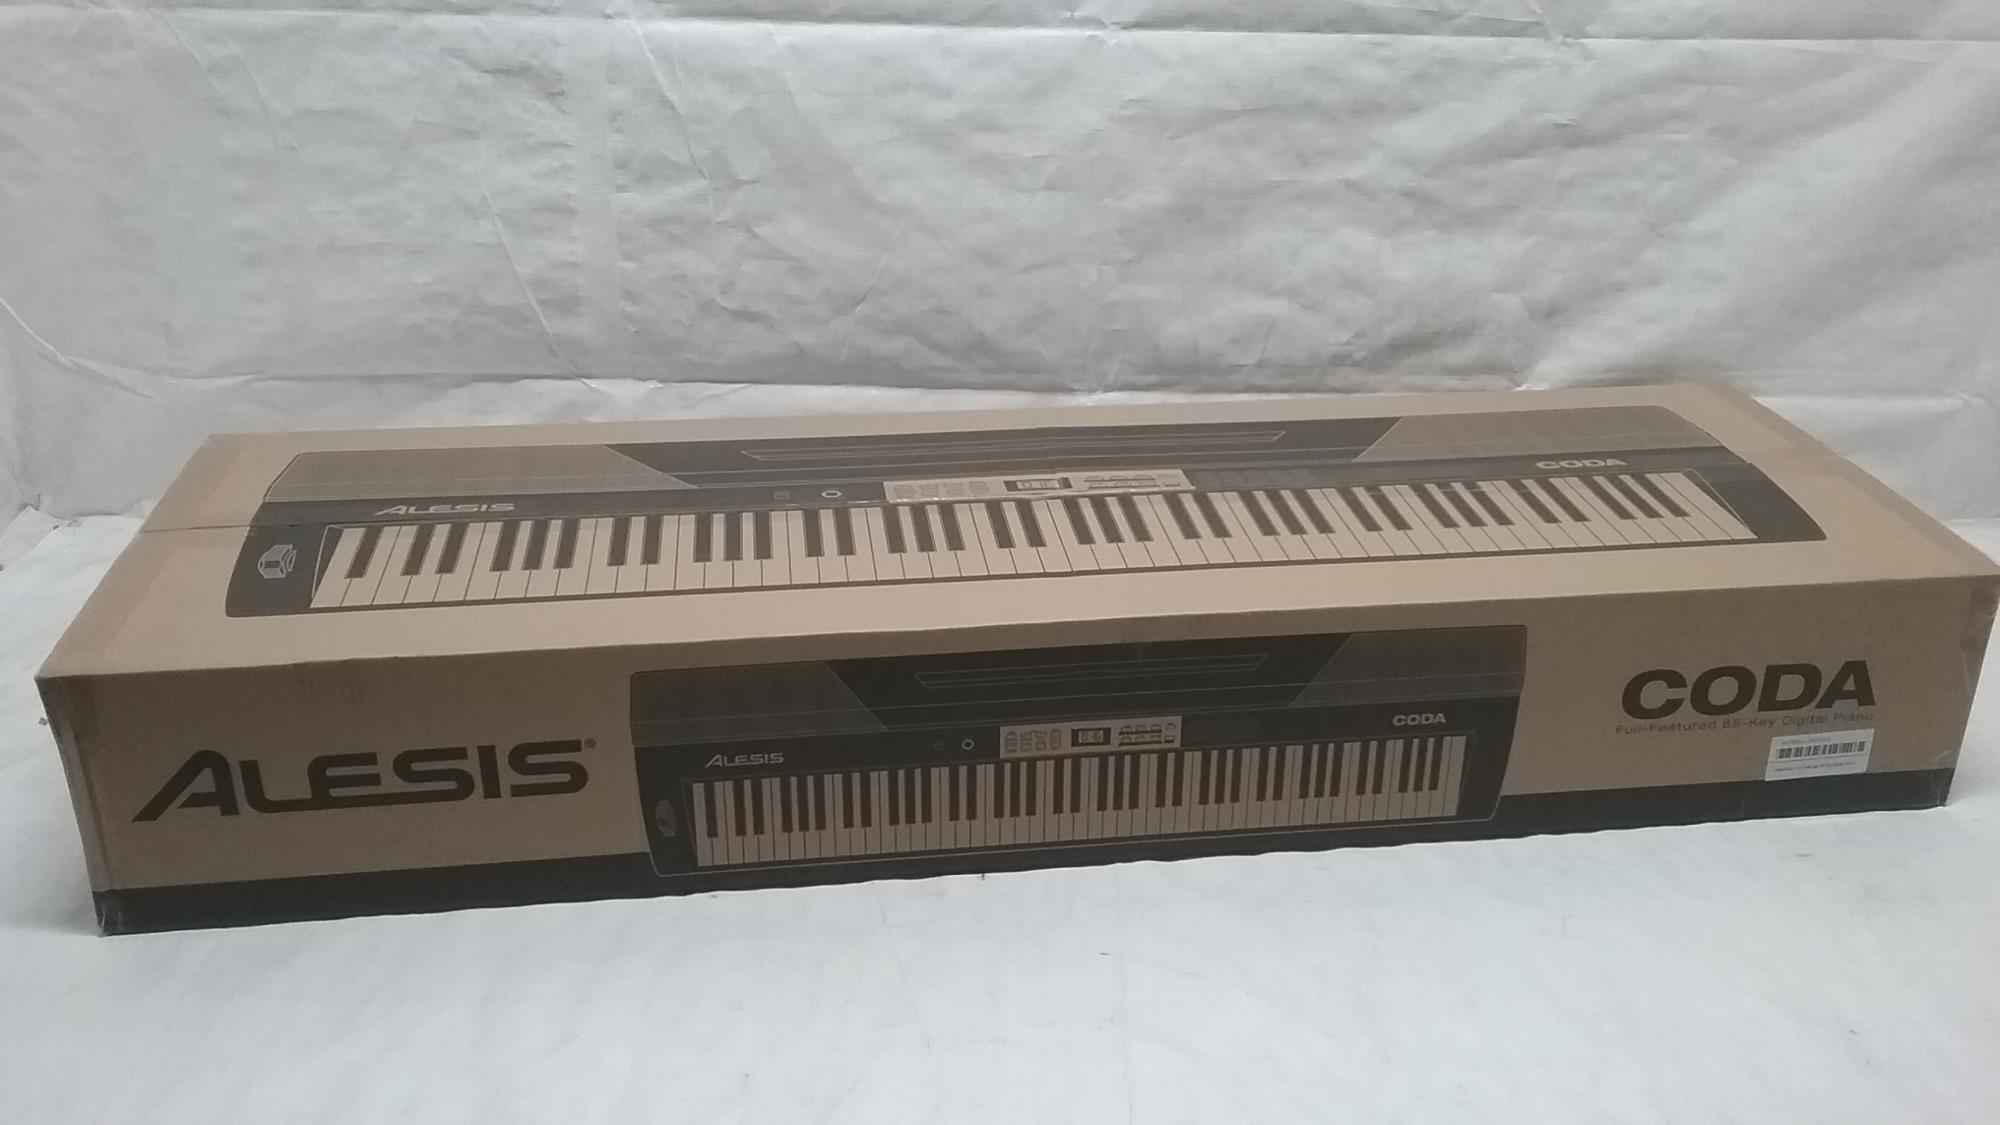 alesis coda 88 key digital piano with semi weighted keys split keyboard. Black Bedroom Furniture Sets. Home Design Ideas